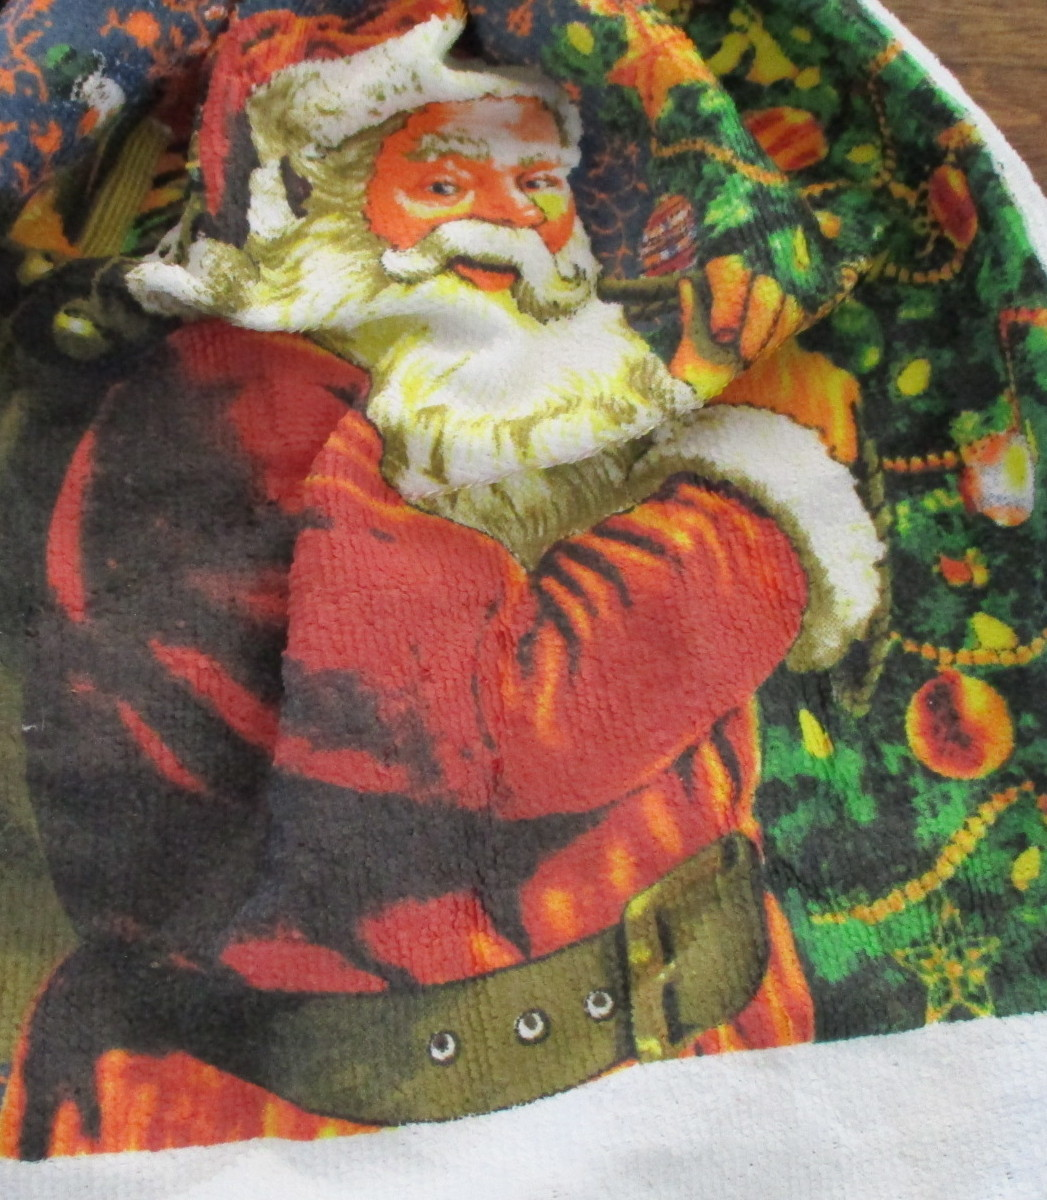 Kitchen Towel with Crocheted Top - Santa